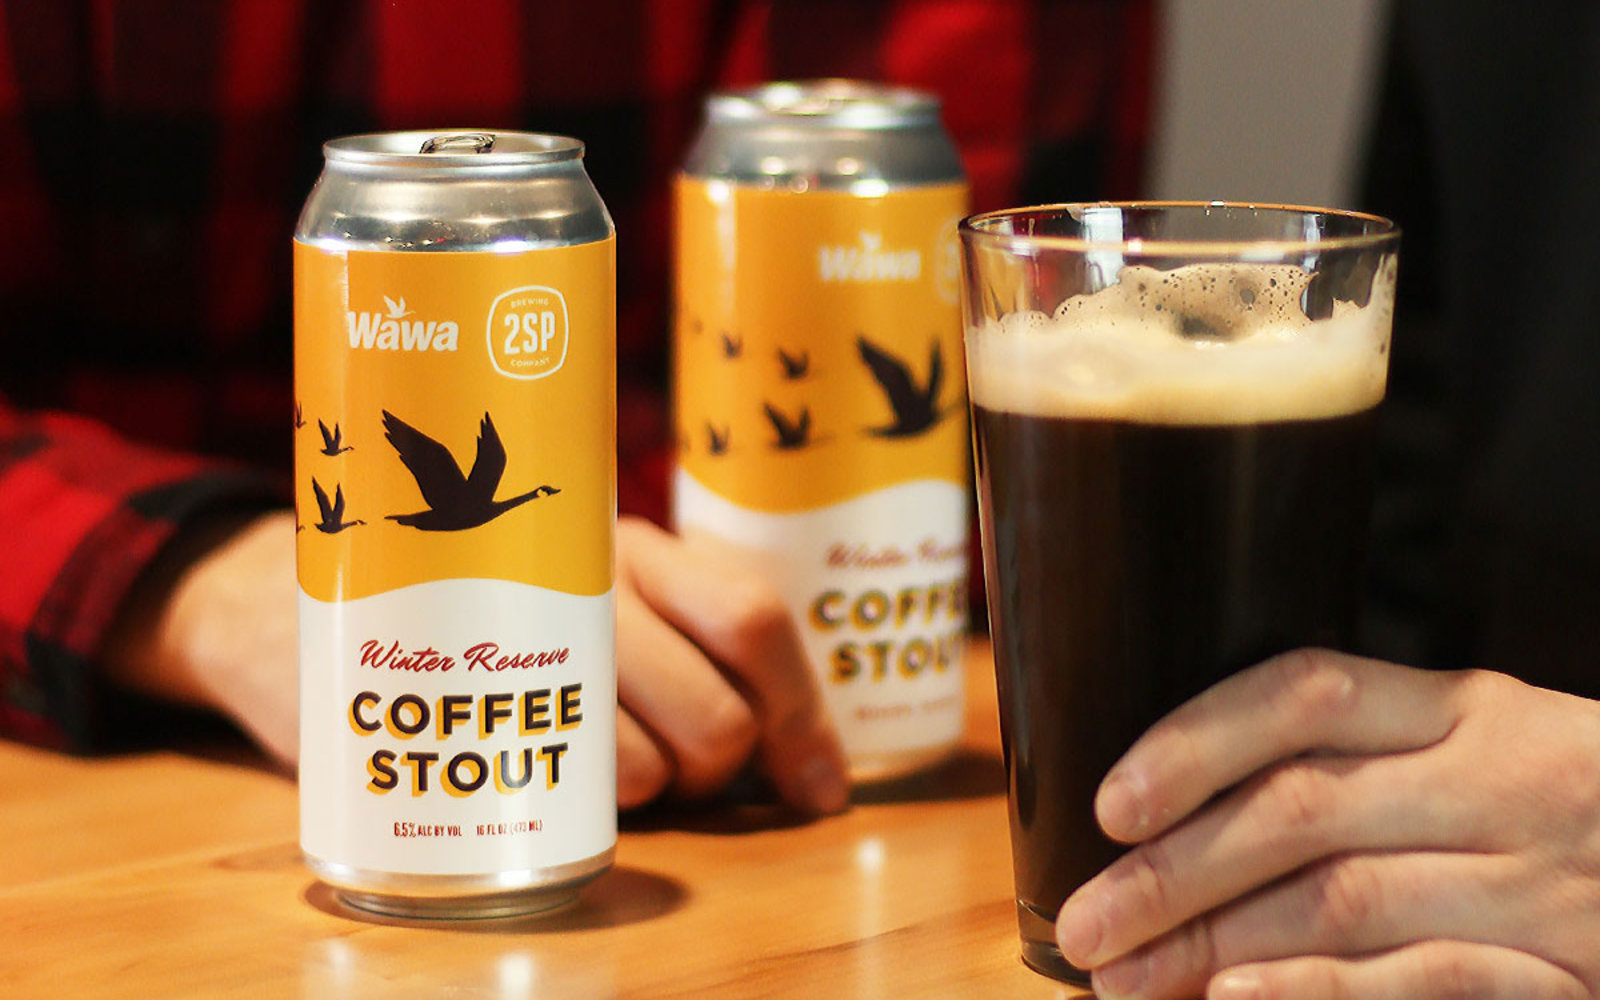 Wawa & 2SP Beer Collaboration